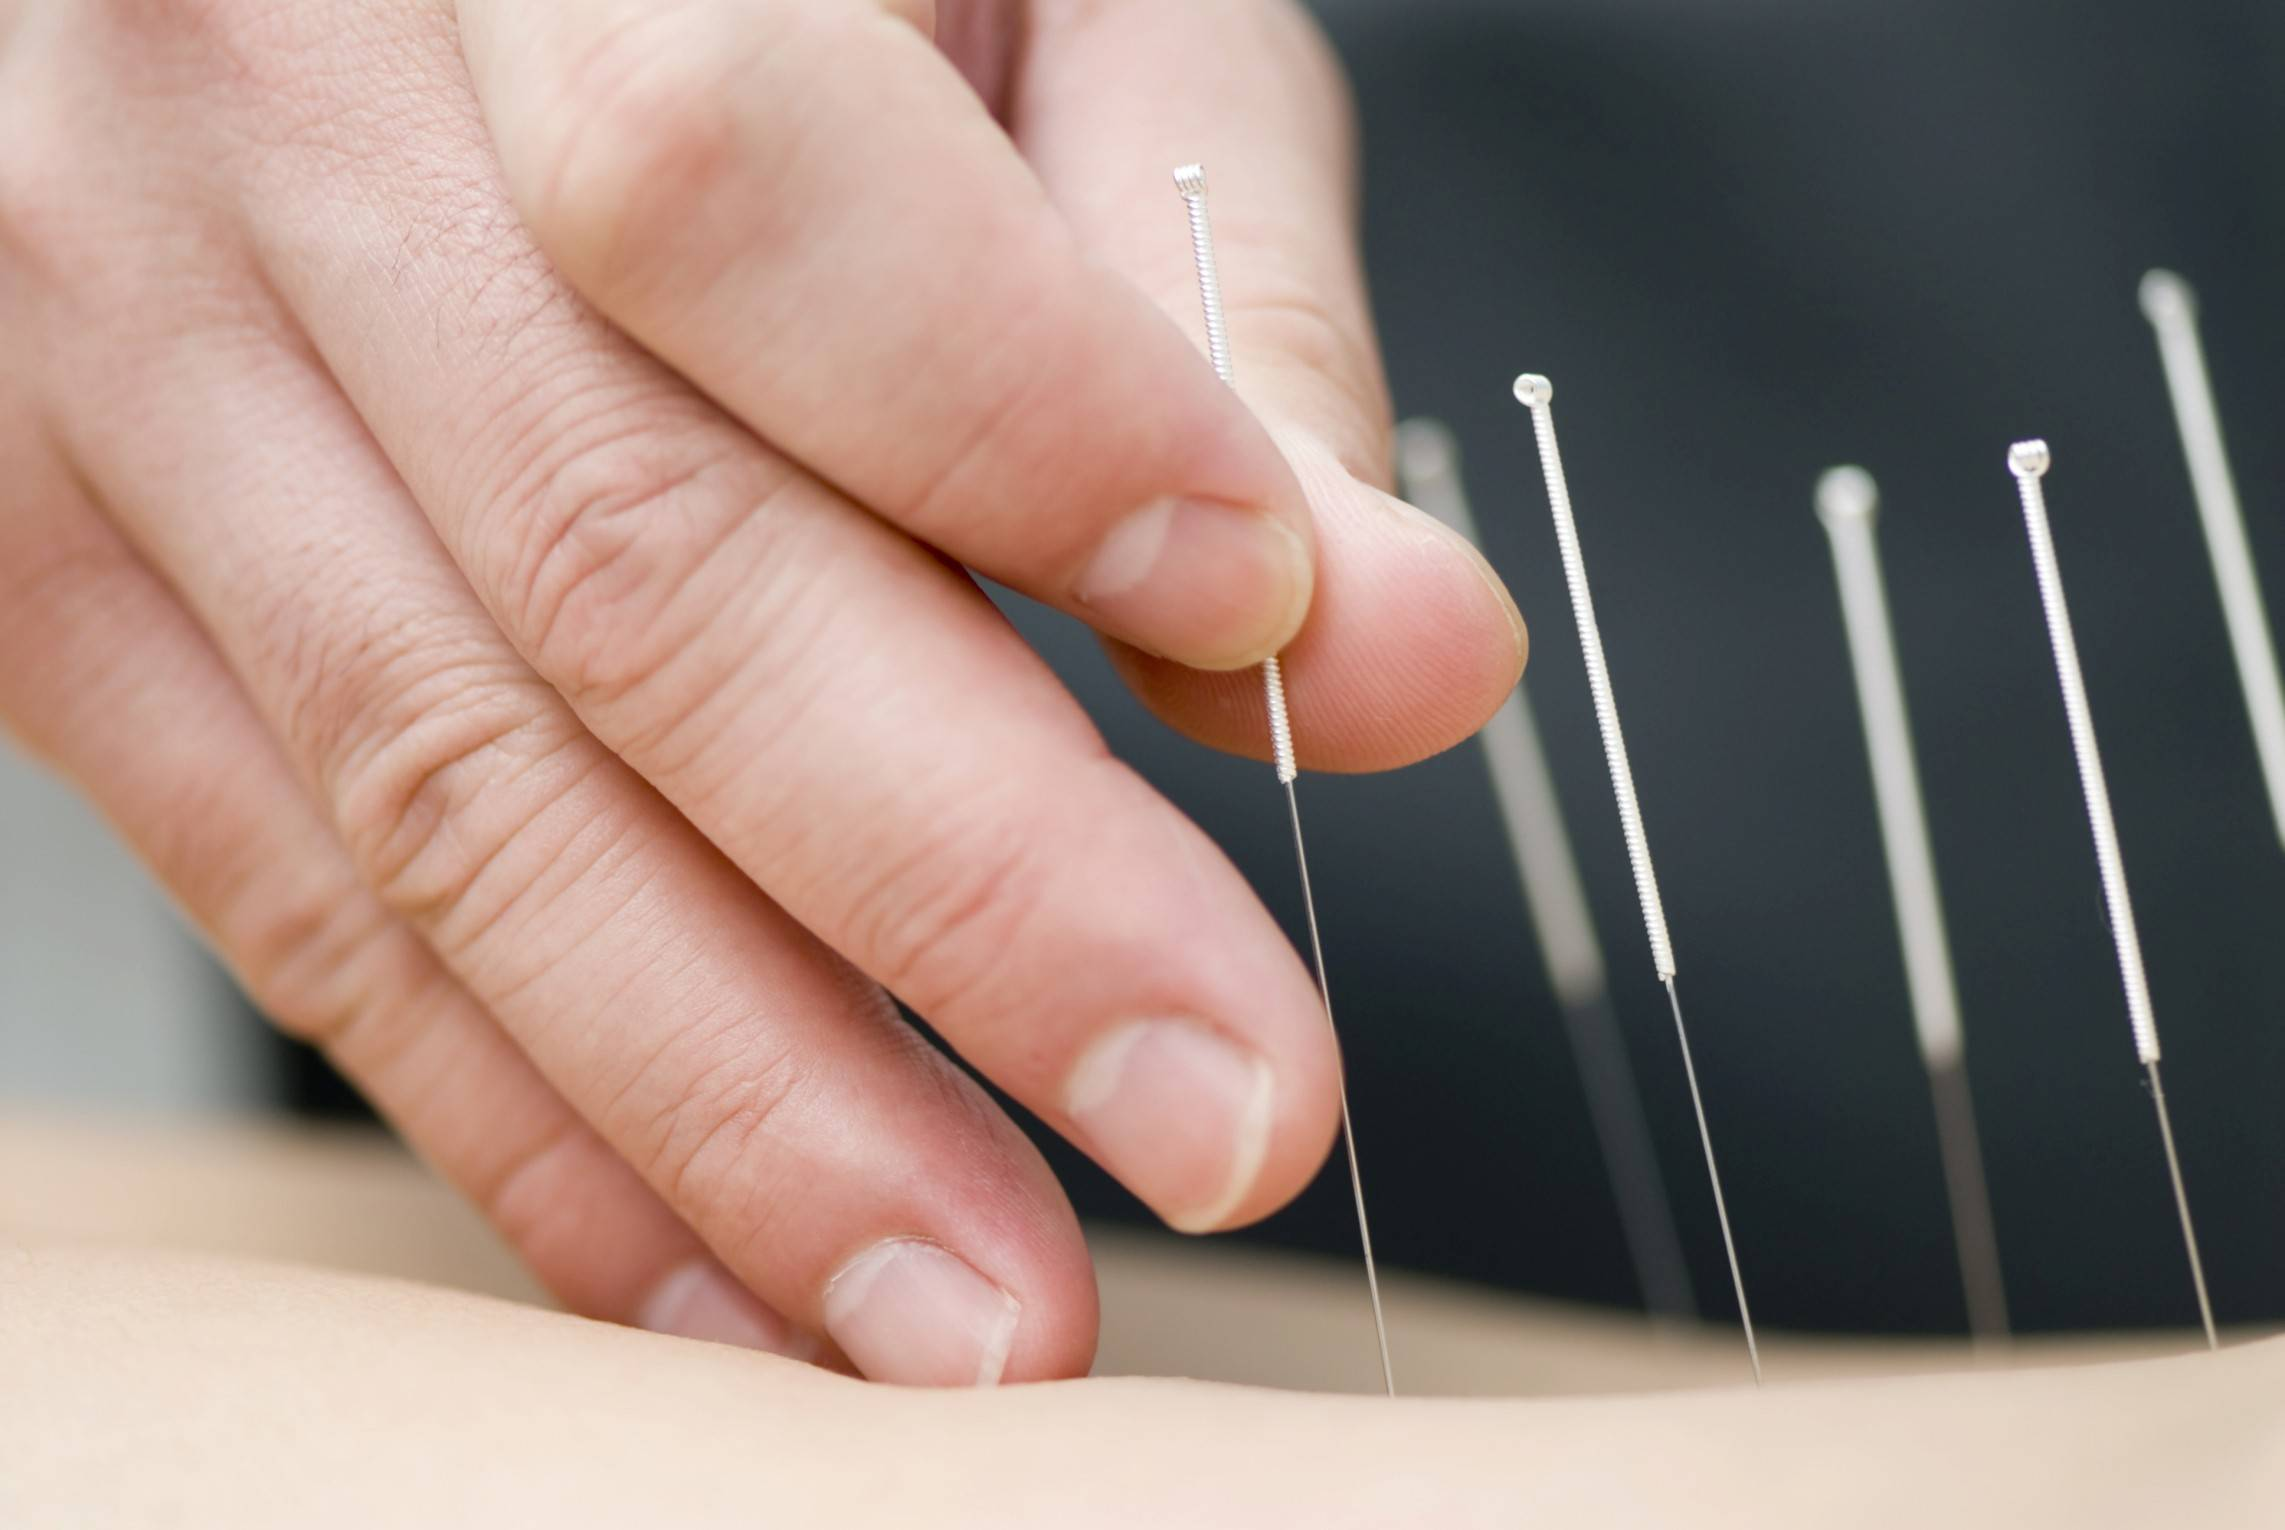 Dr. Patrick Massey recommends to his patients to try six sessions of acupuncture to see if it helps with allergies.